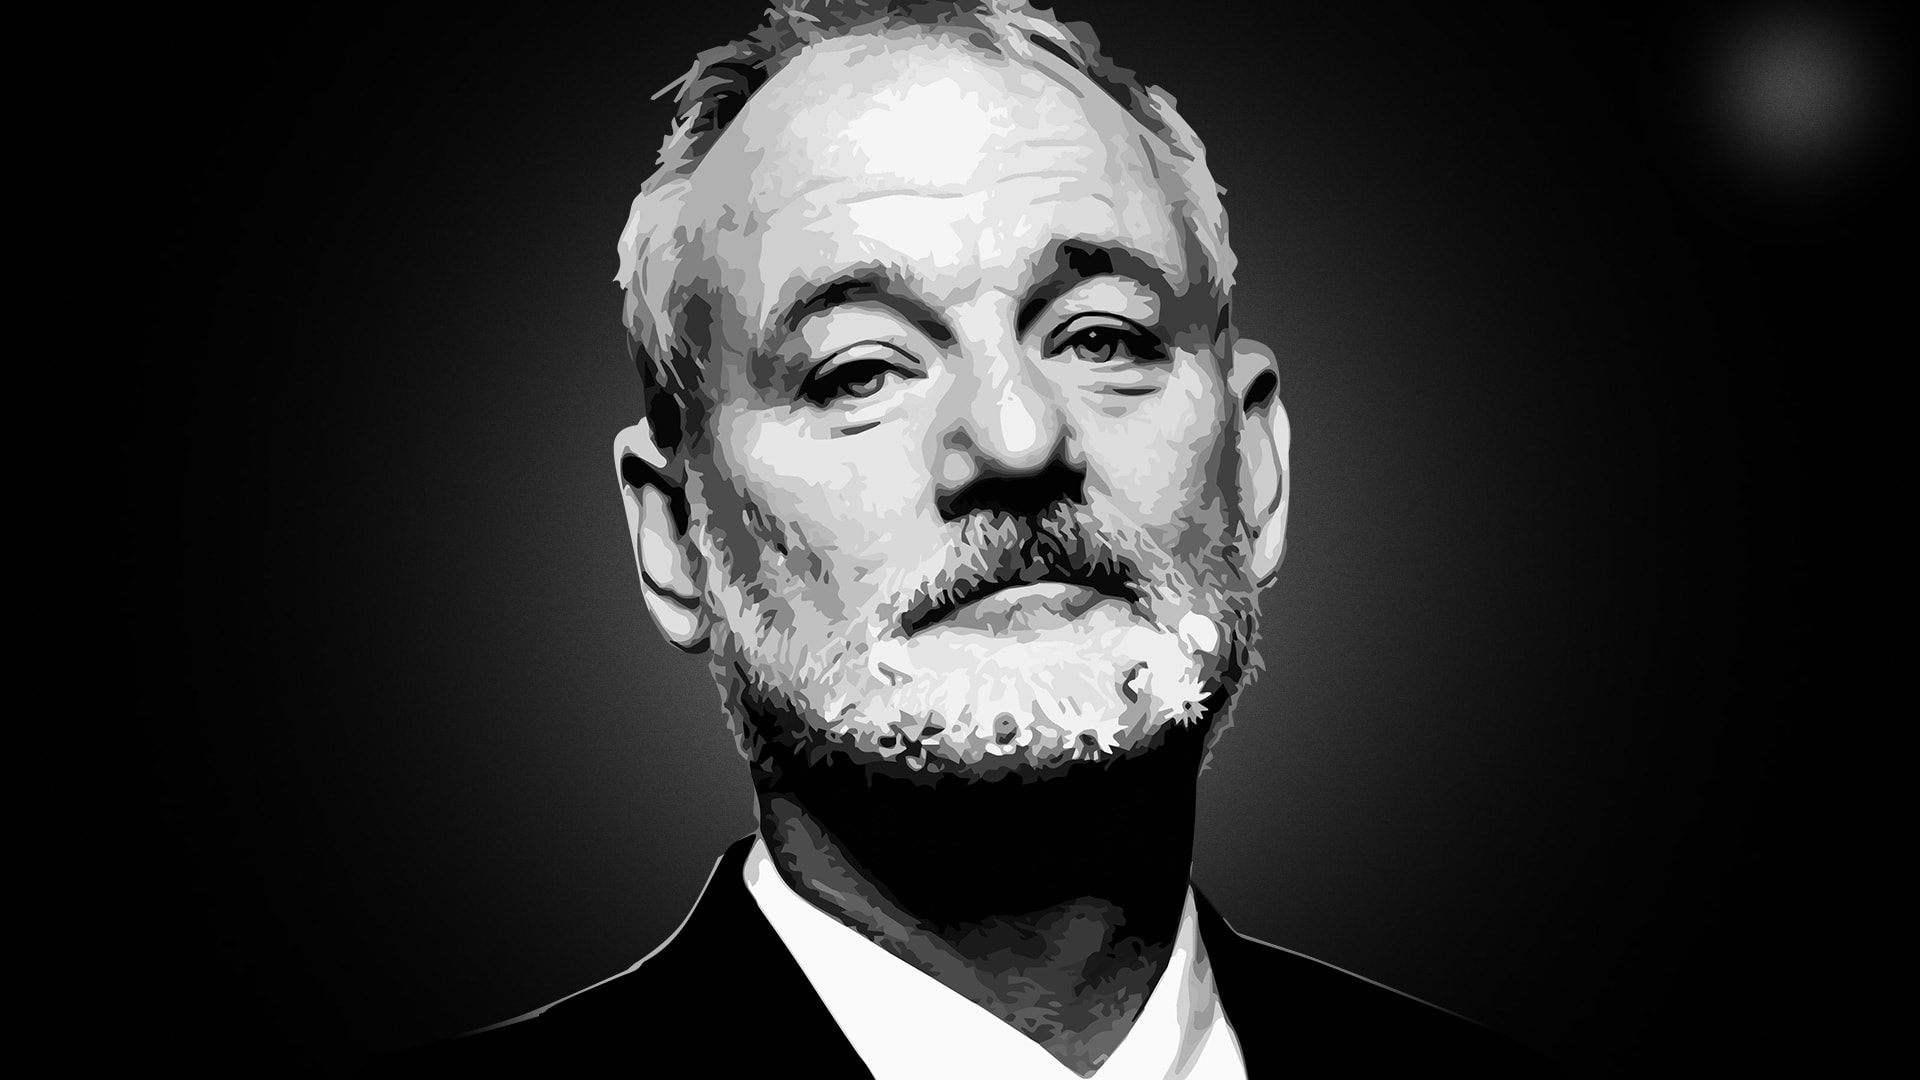 bill murray hd wallpaper - photo #7